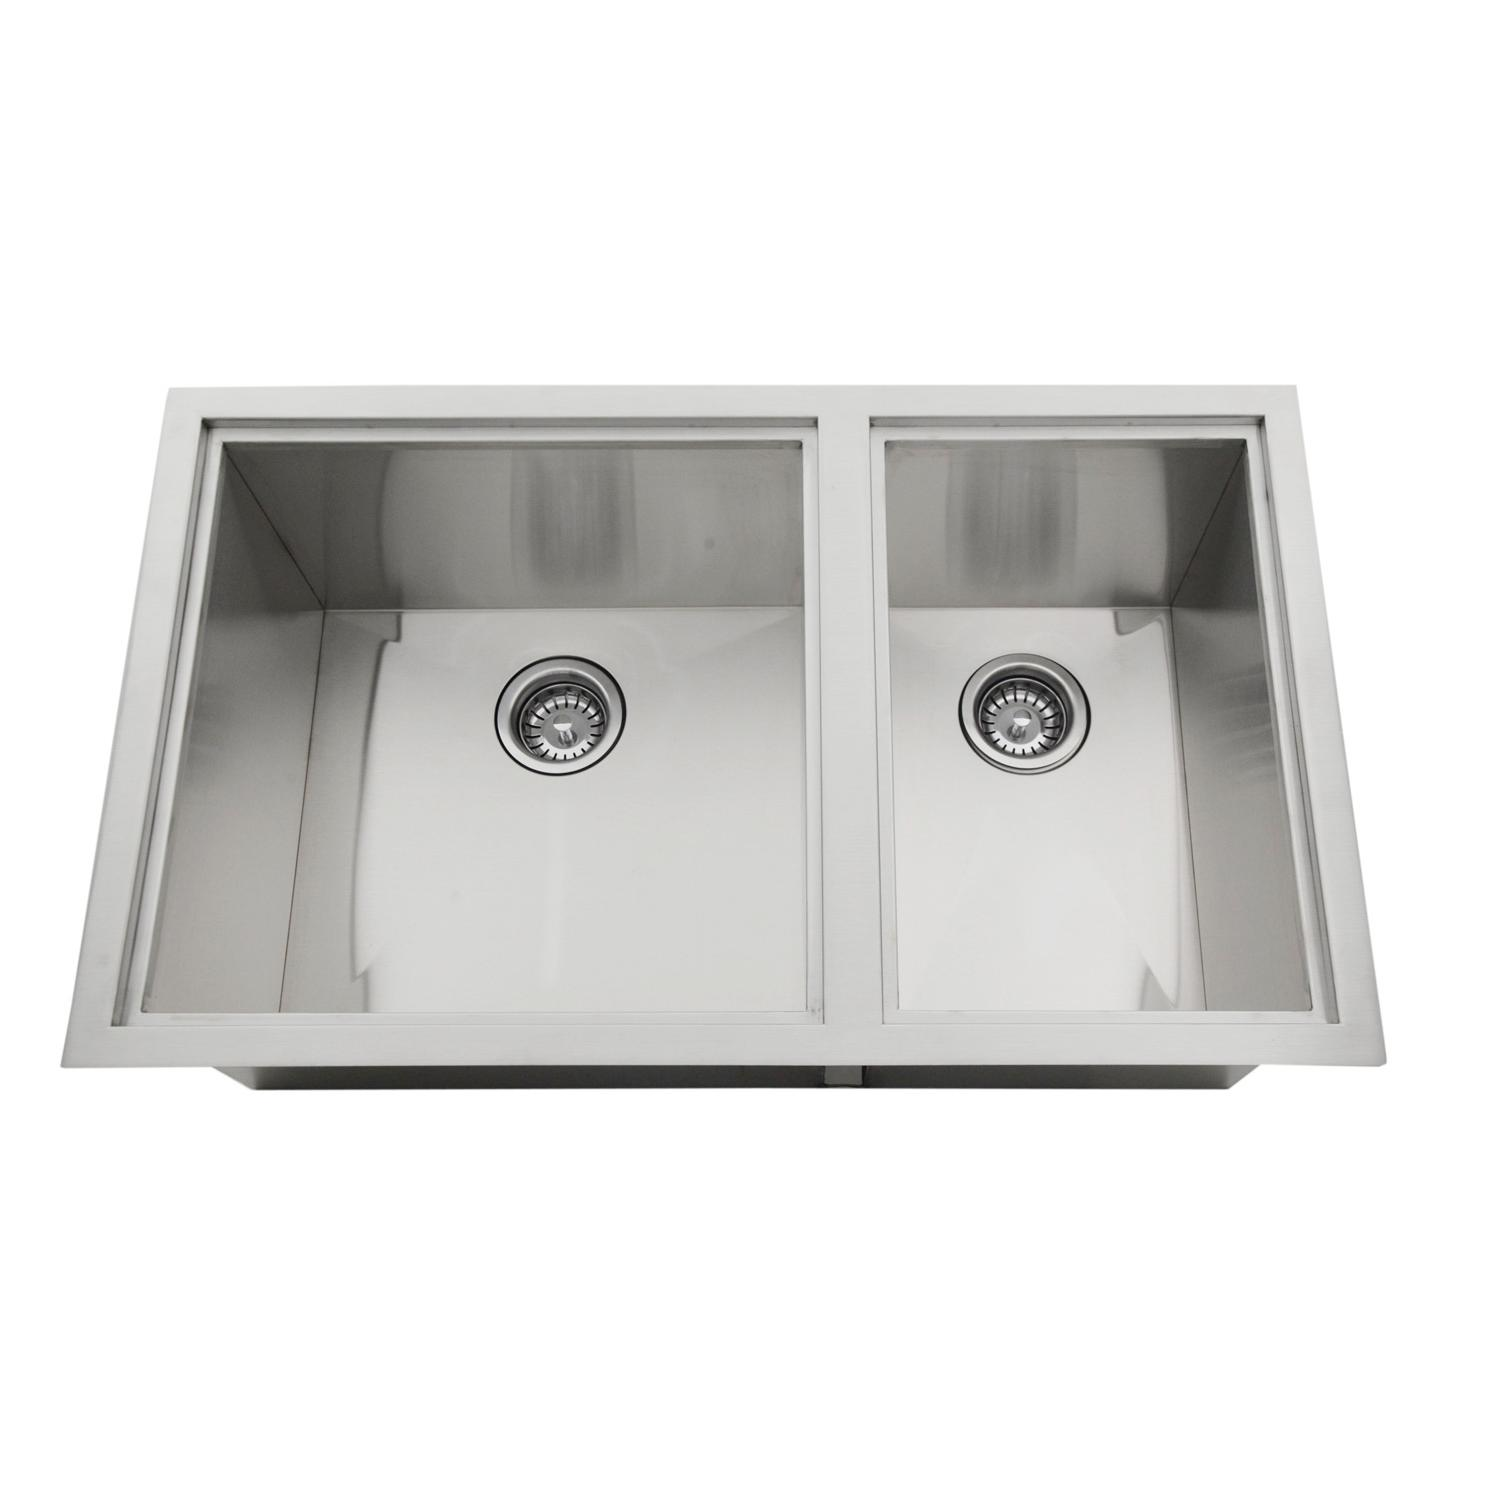 Sunstone Dual Mount 34 Inch Outdoor Rated Double Basin Sink With Covers B Sk34 With Images Double Basin Sink Basin Sink Double Basin